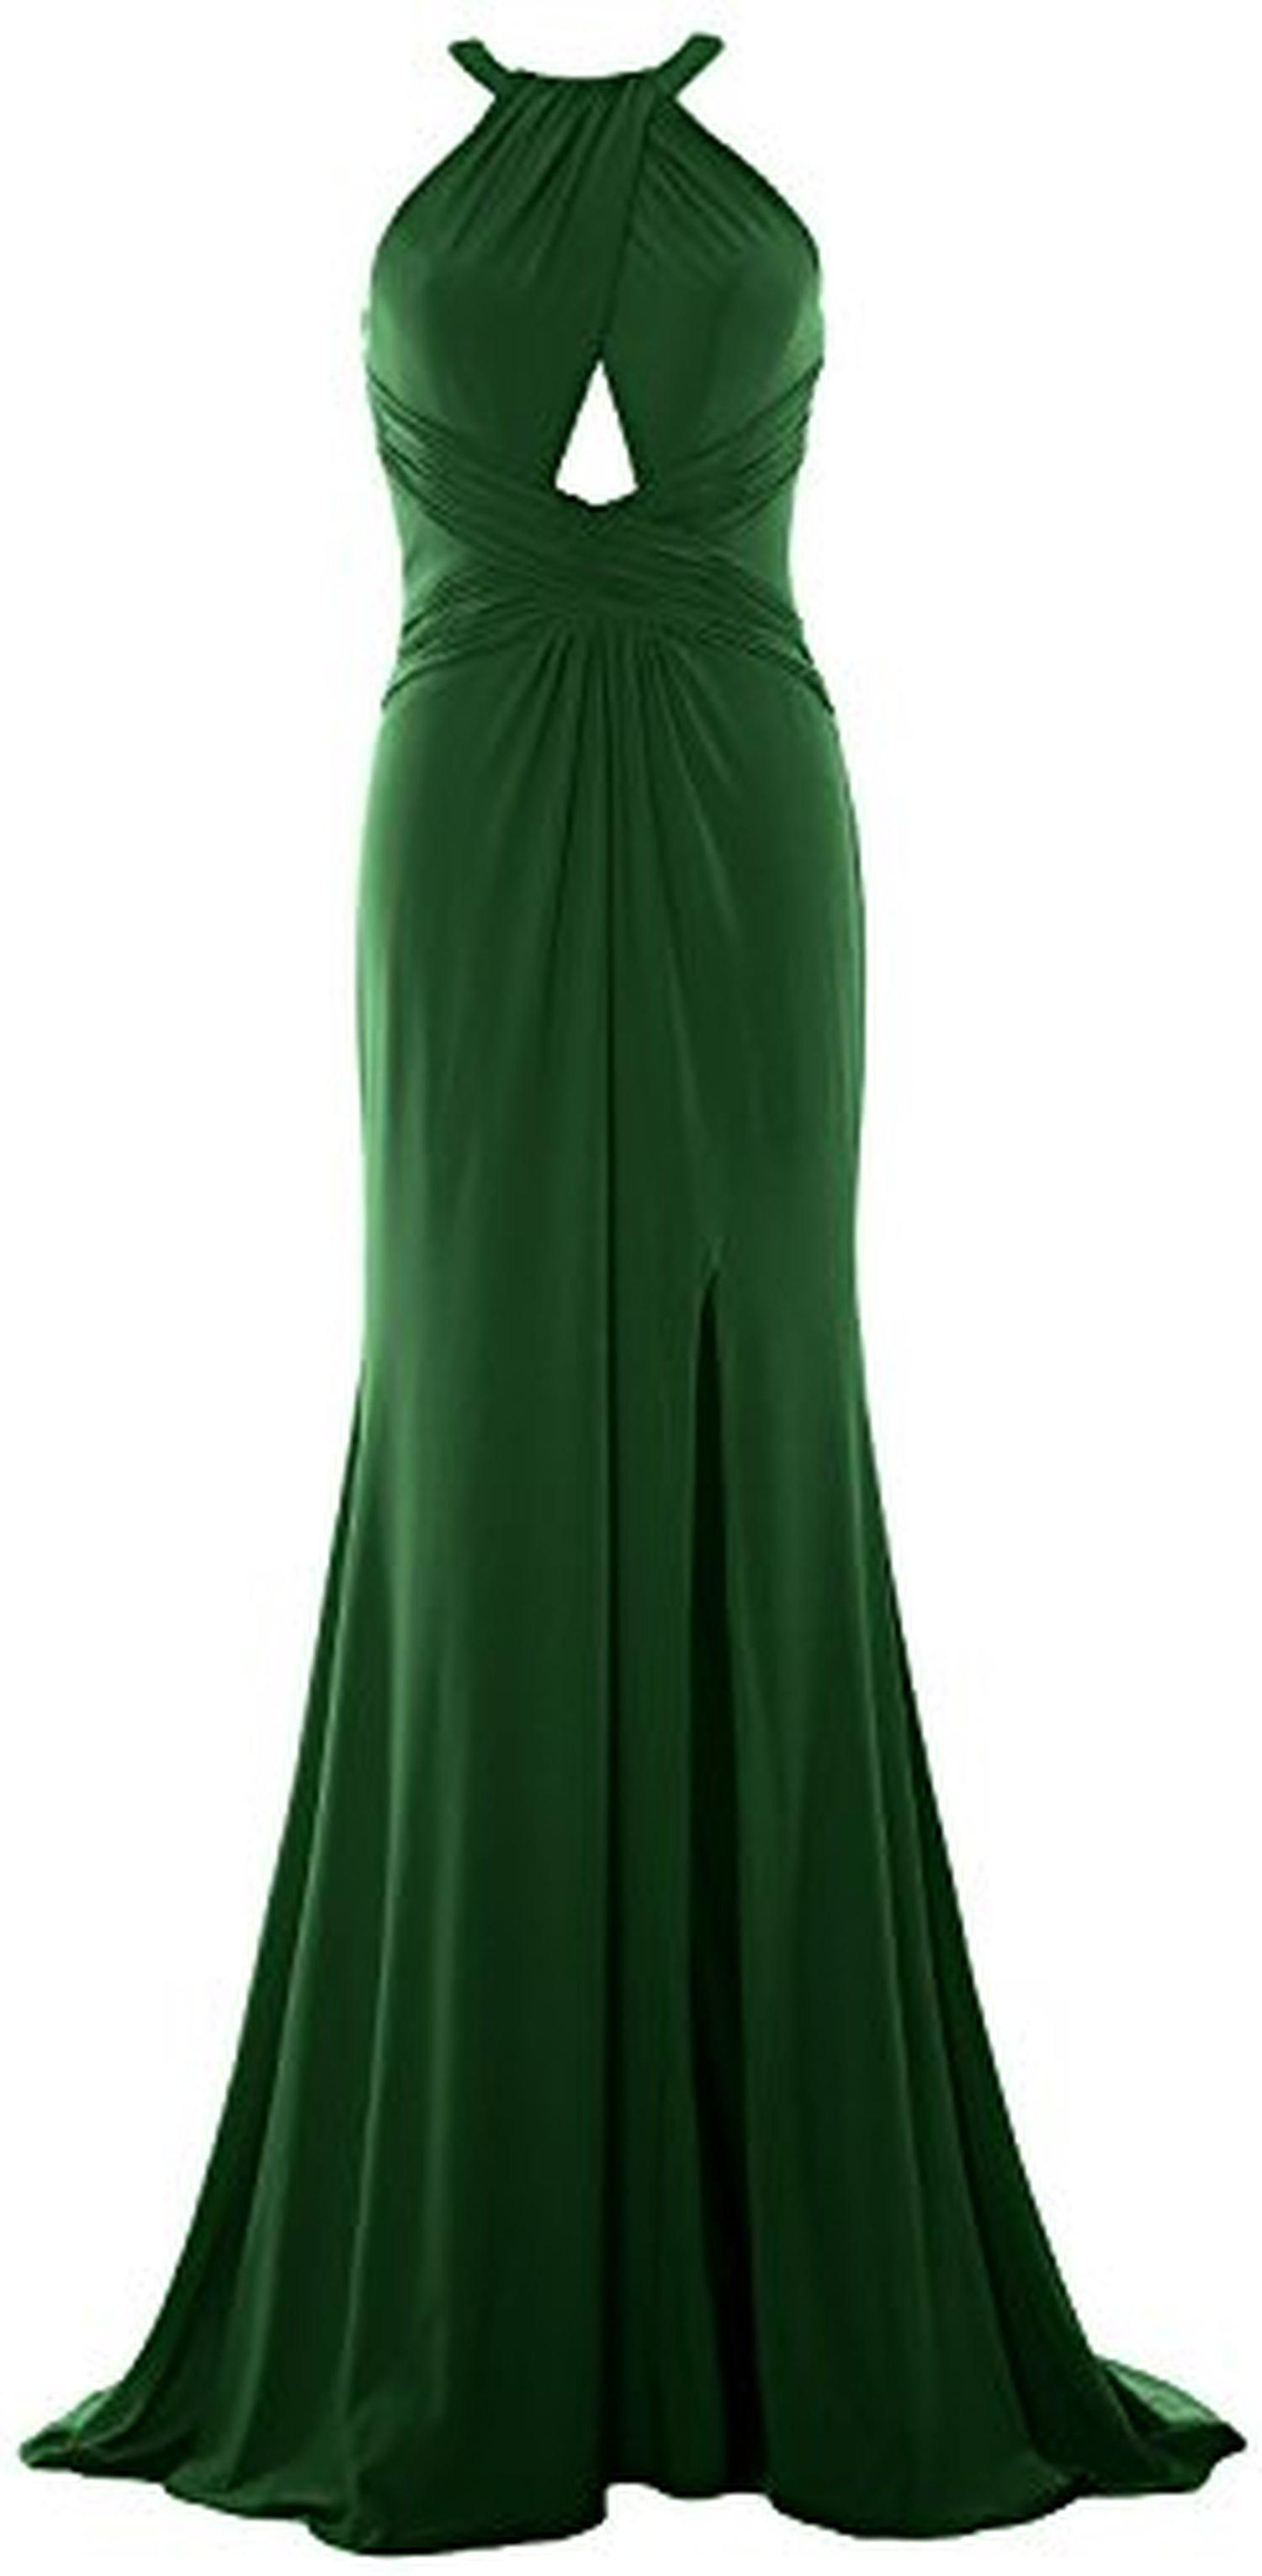 7696ddcb7c4 MACloth Women Mermaid Halter Sexy Jersey Formal Evening Gown Prom Ball Gown  (26w, Dark Green) - Brought to you by Avarsha.com